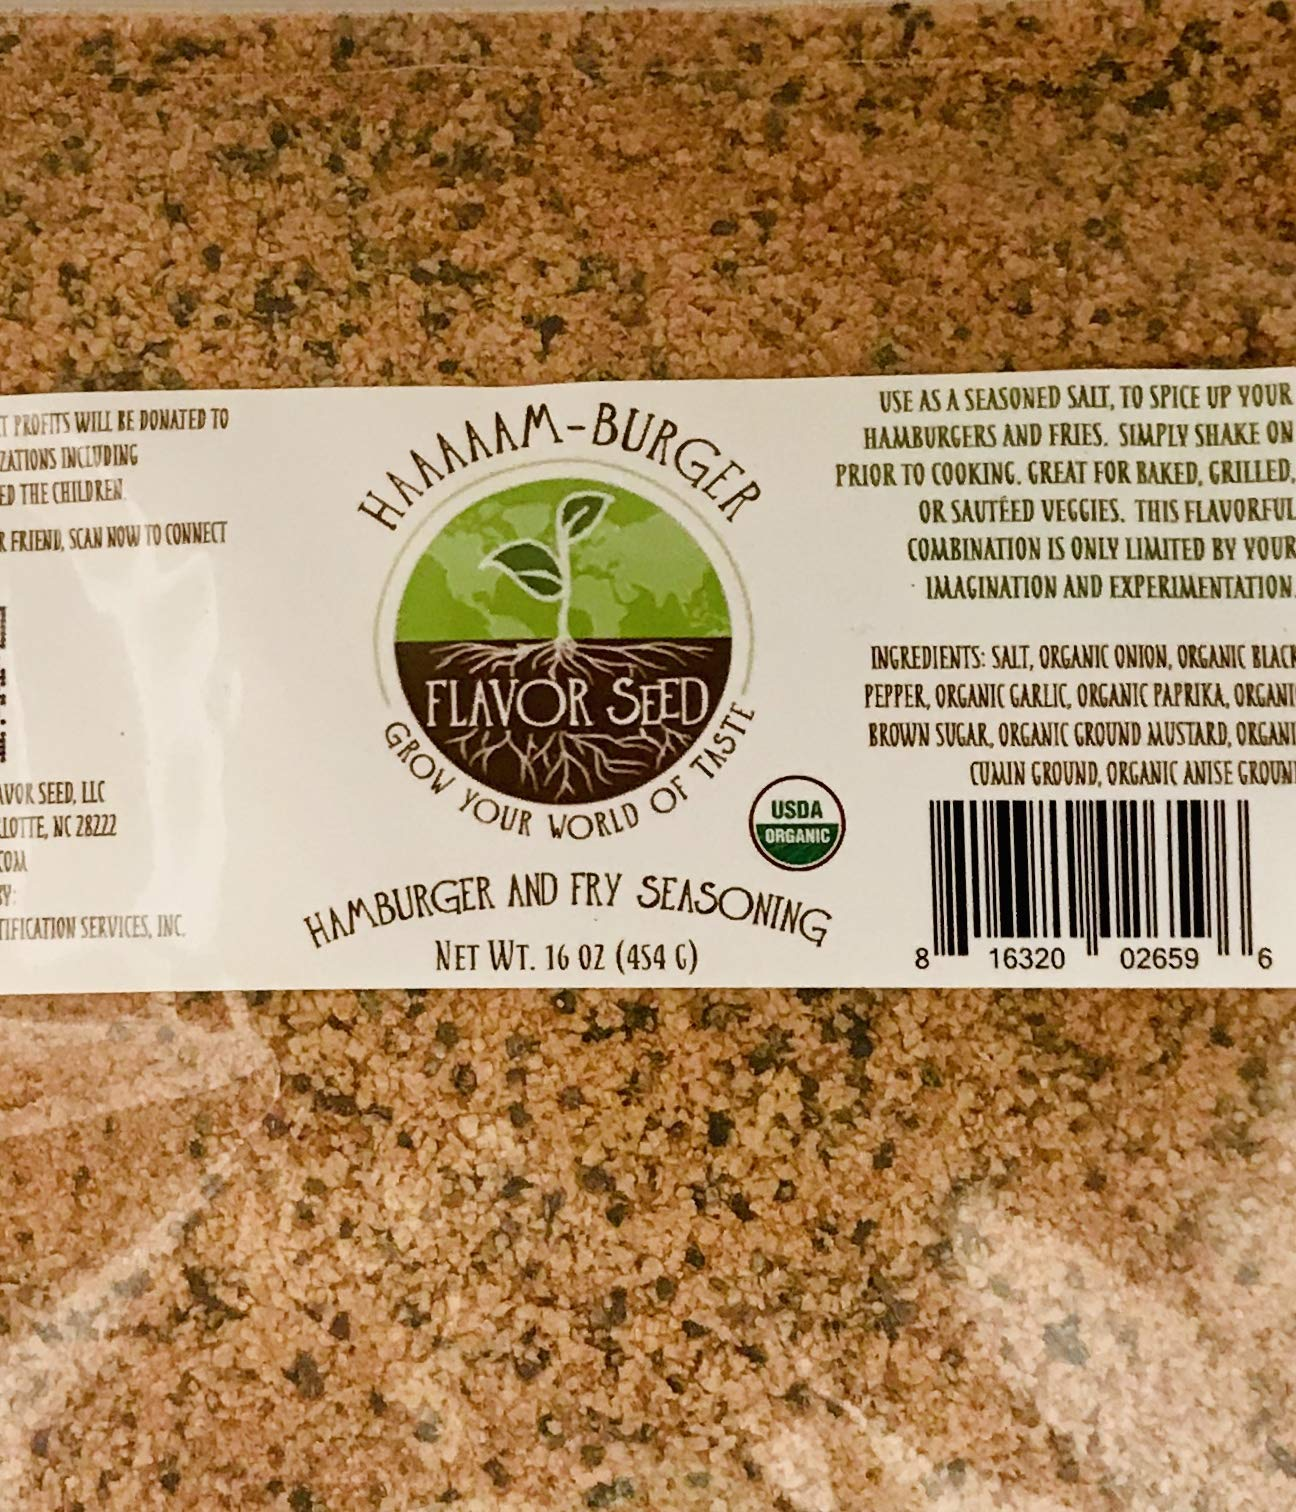 FLAVOR SEED - HAAAAAM-Burger Organic Hamburger and French Fry Seasoning|Keto, Paleo, Non-GMO, Gluten Free|Use on Burgers, Fries, Steak, Chicken, Turkey Burger, Vegetables, Kabobs|Dip, Seasoning Salt